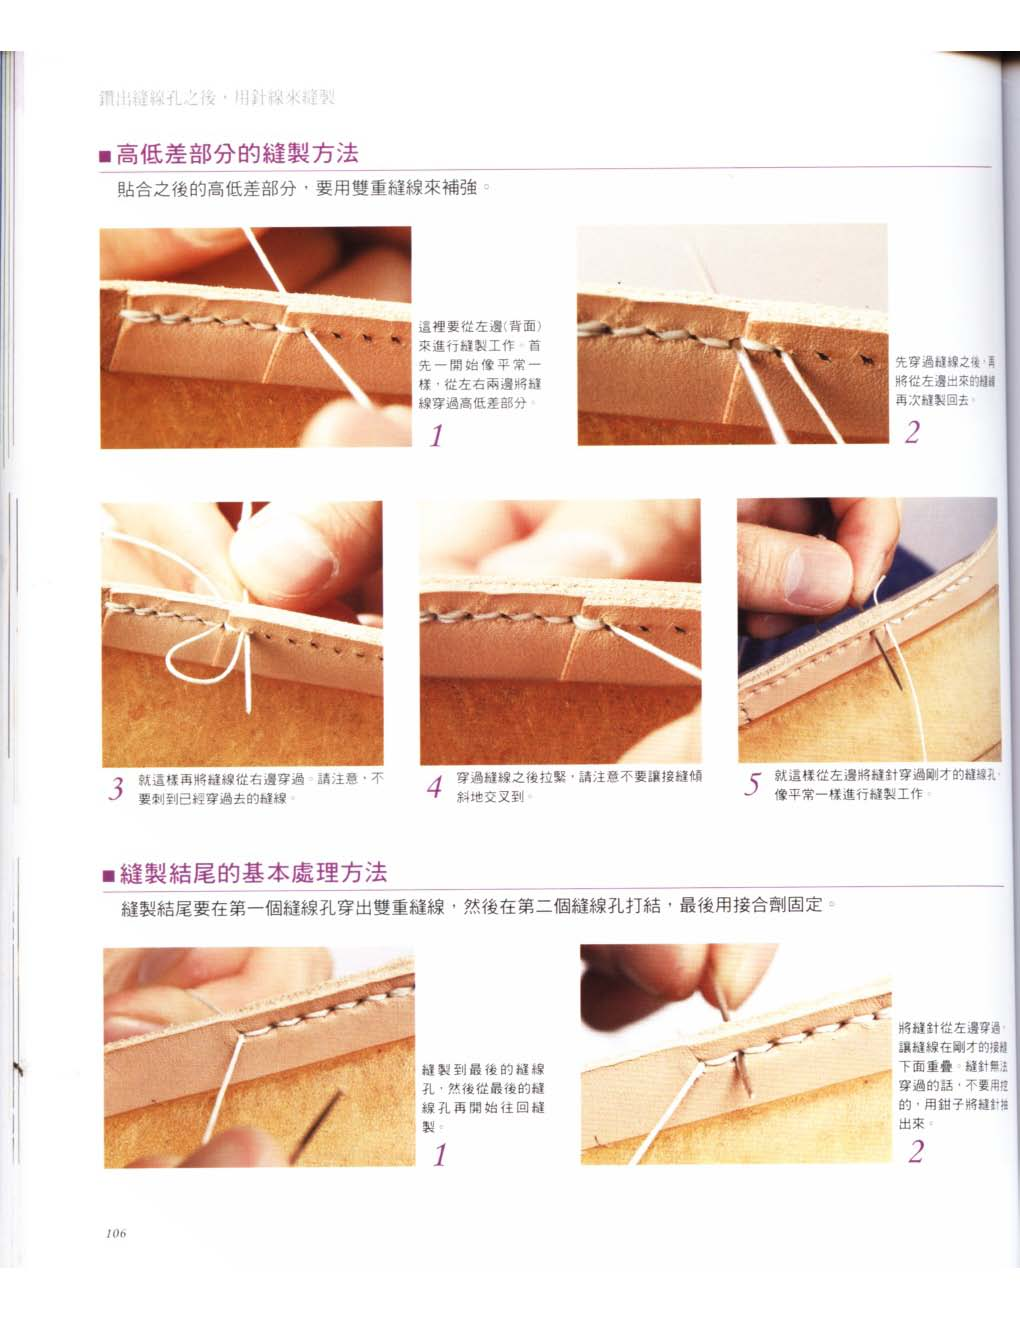 how to sew leather with saddle stitiching (6)